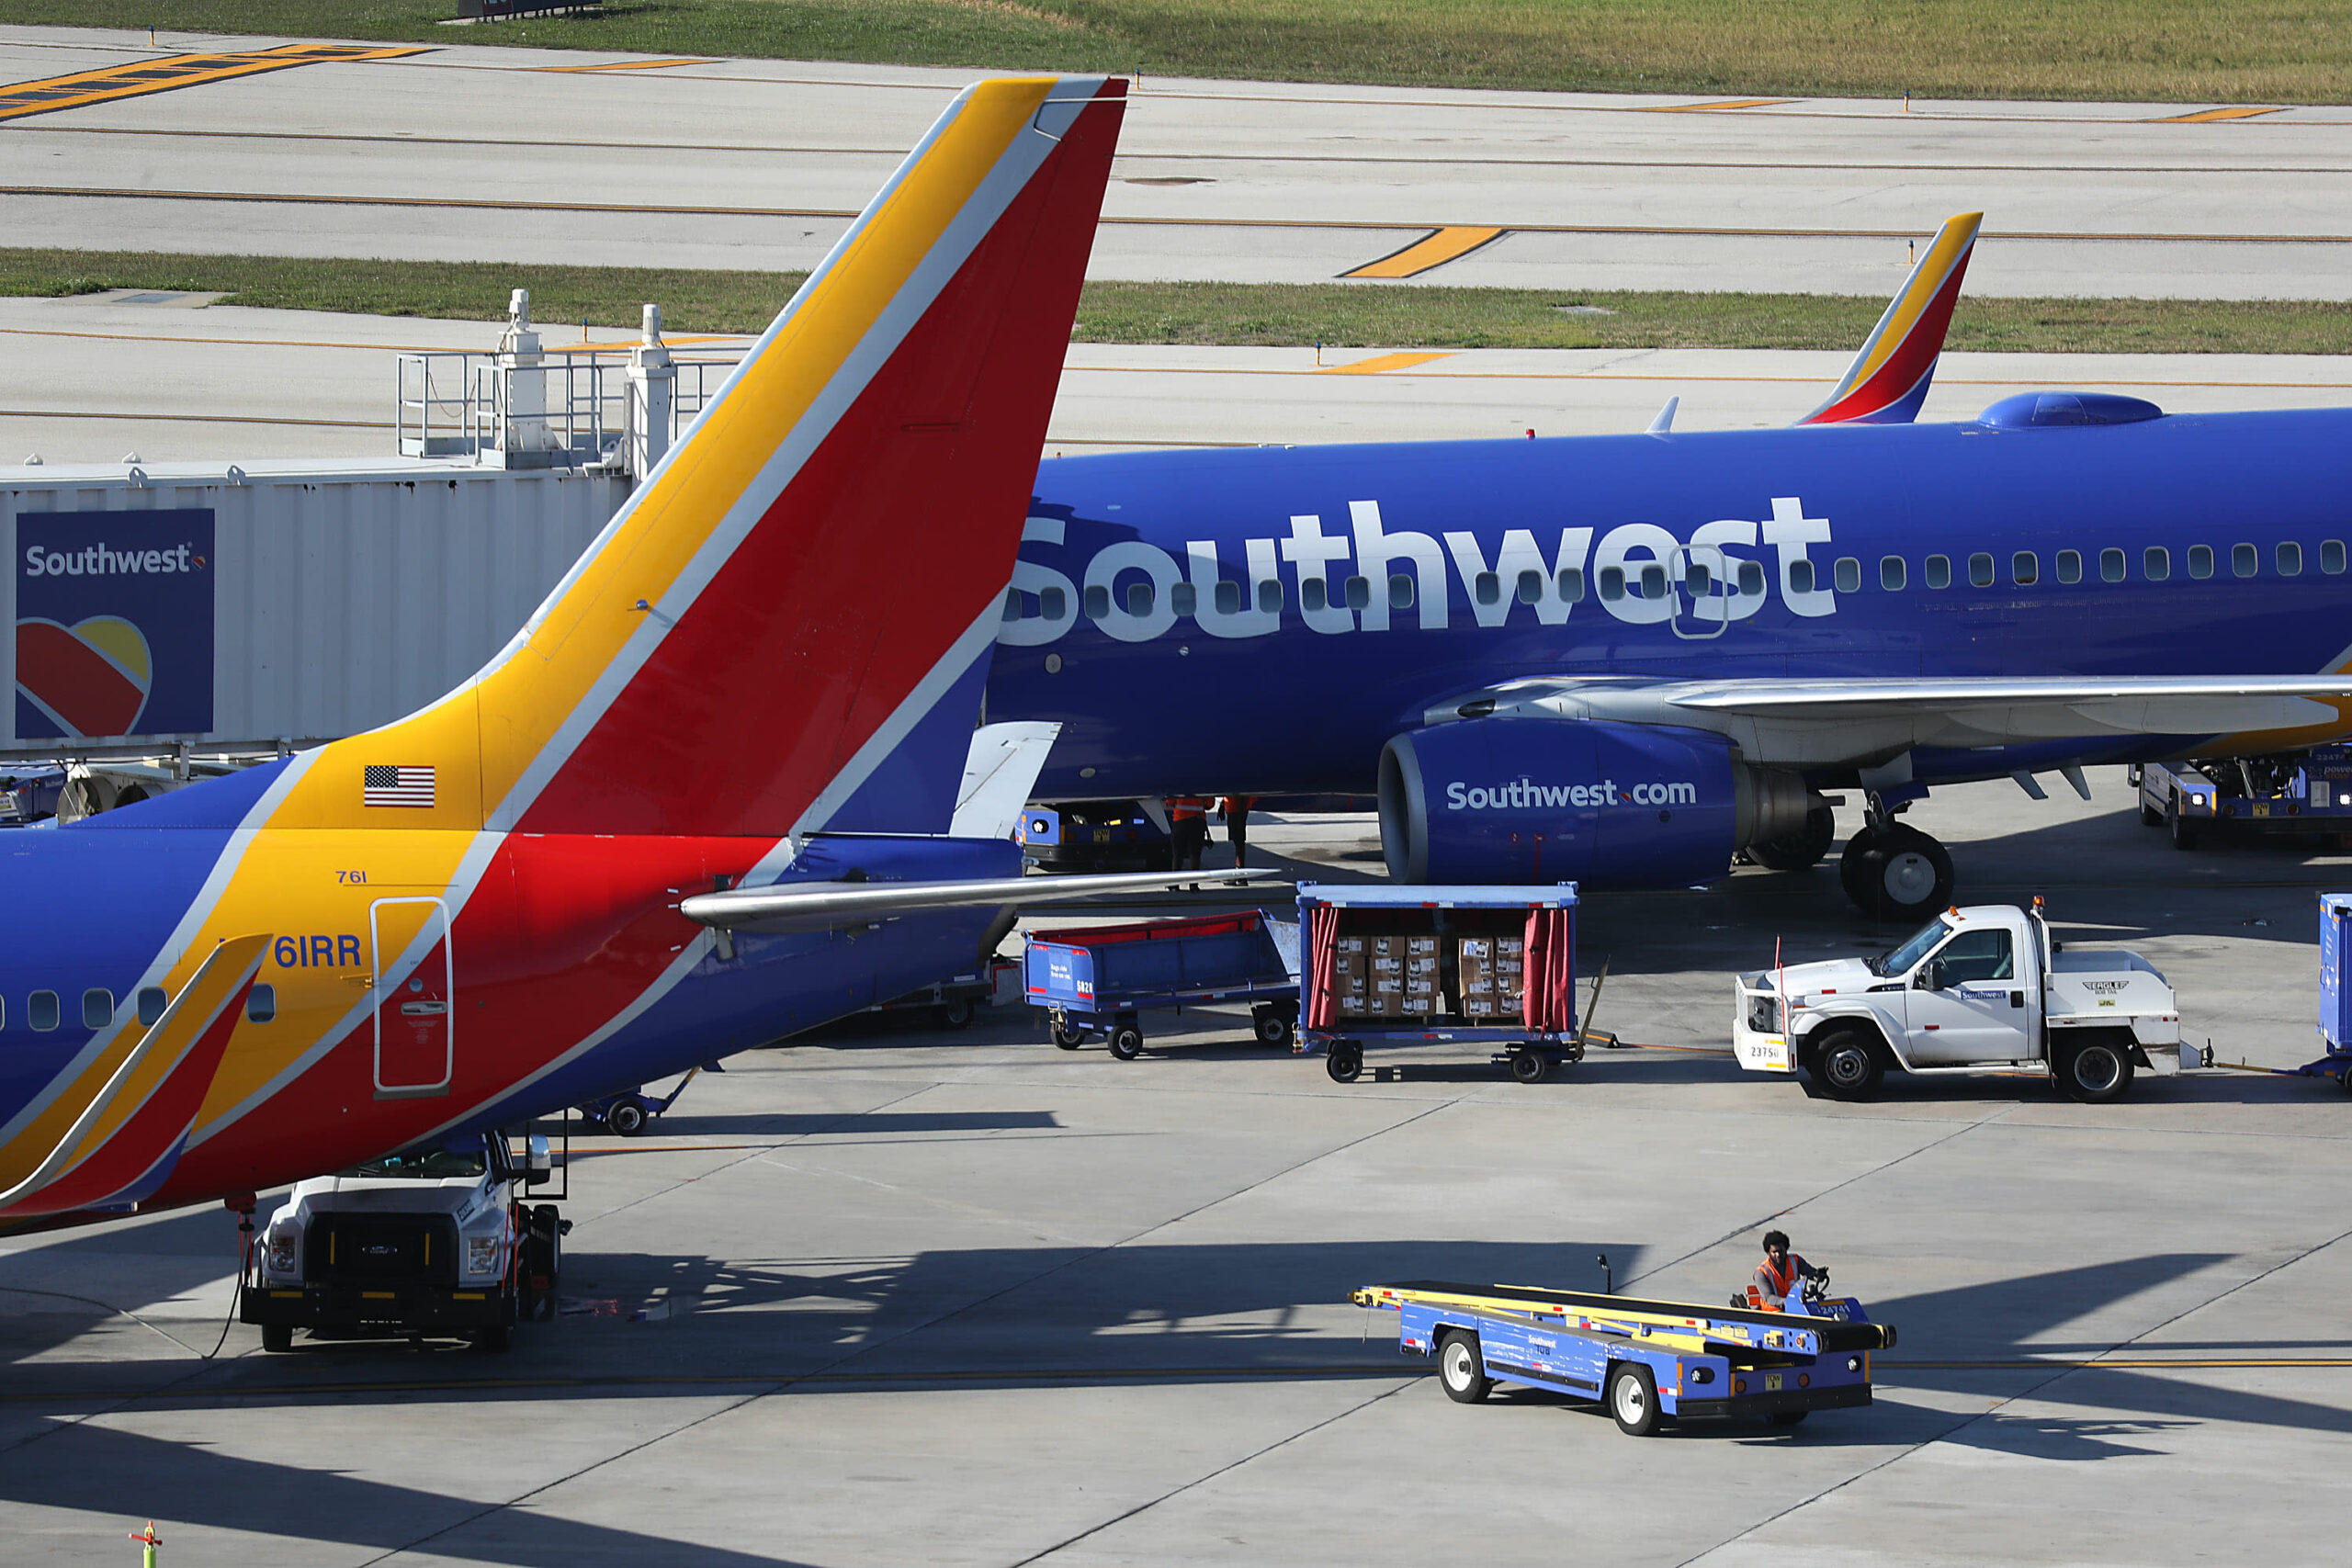 Southwest Airlines (LUV) posts Q2 loss, warns on weak demand because of coronavirus